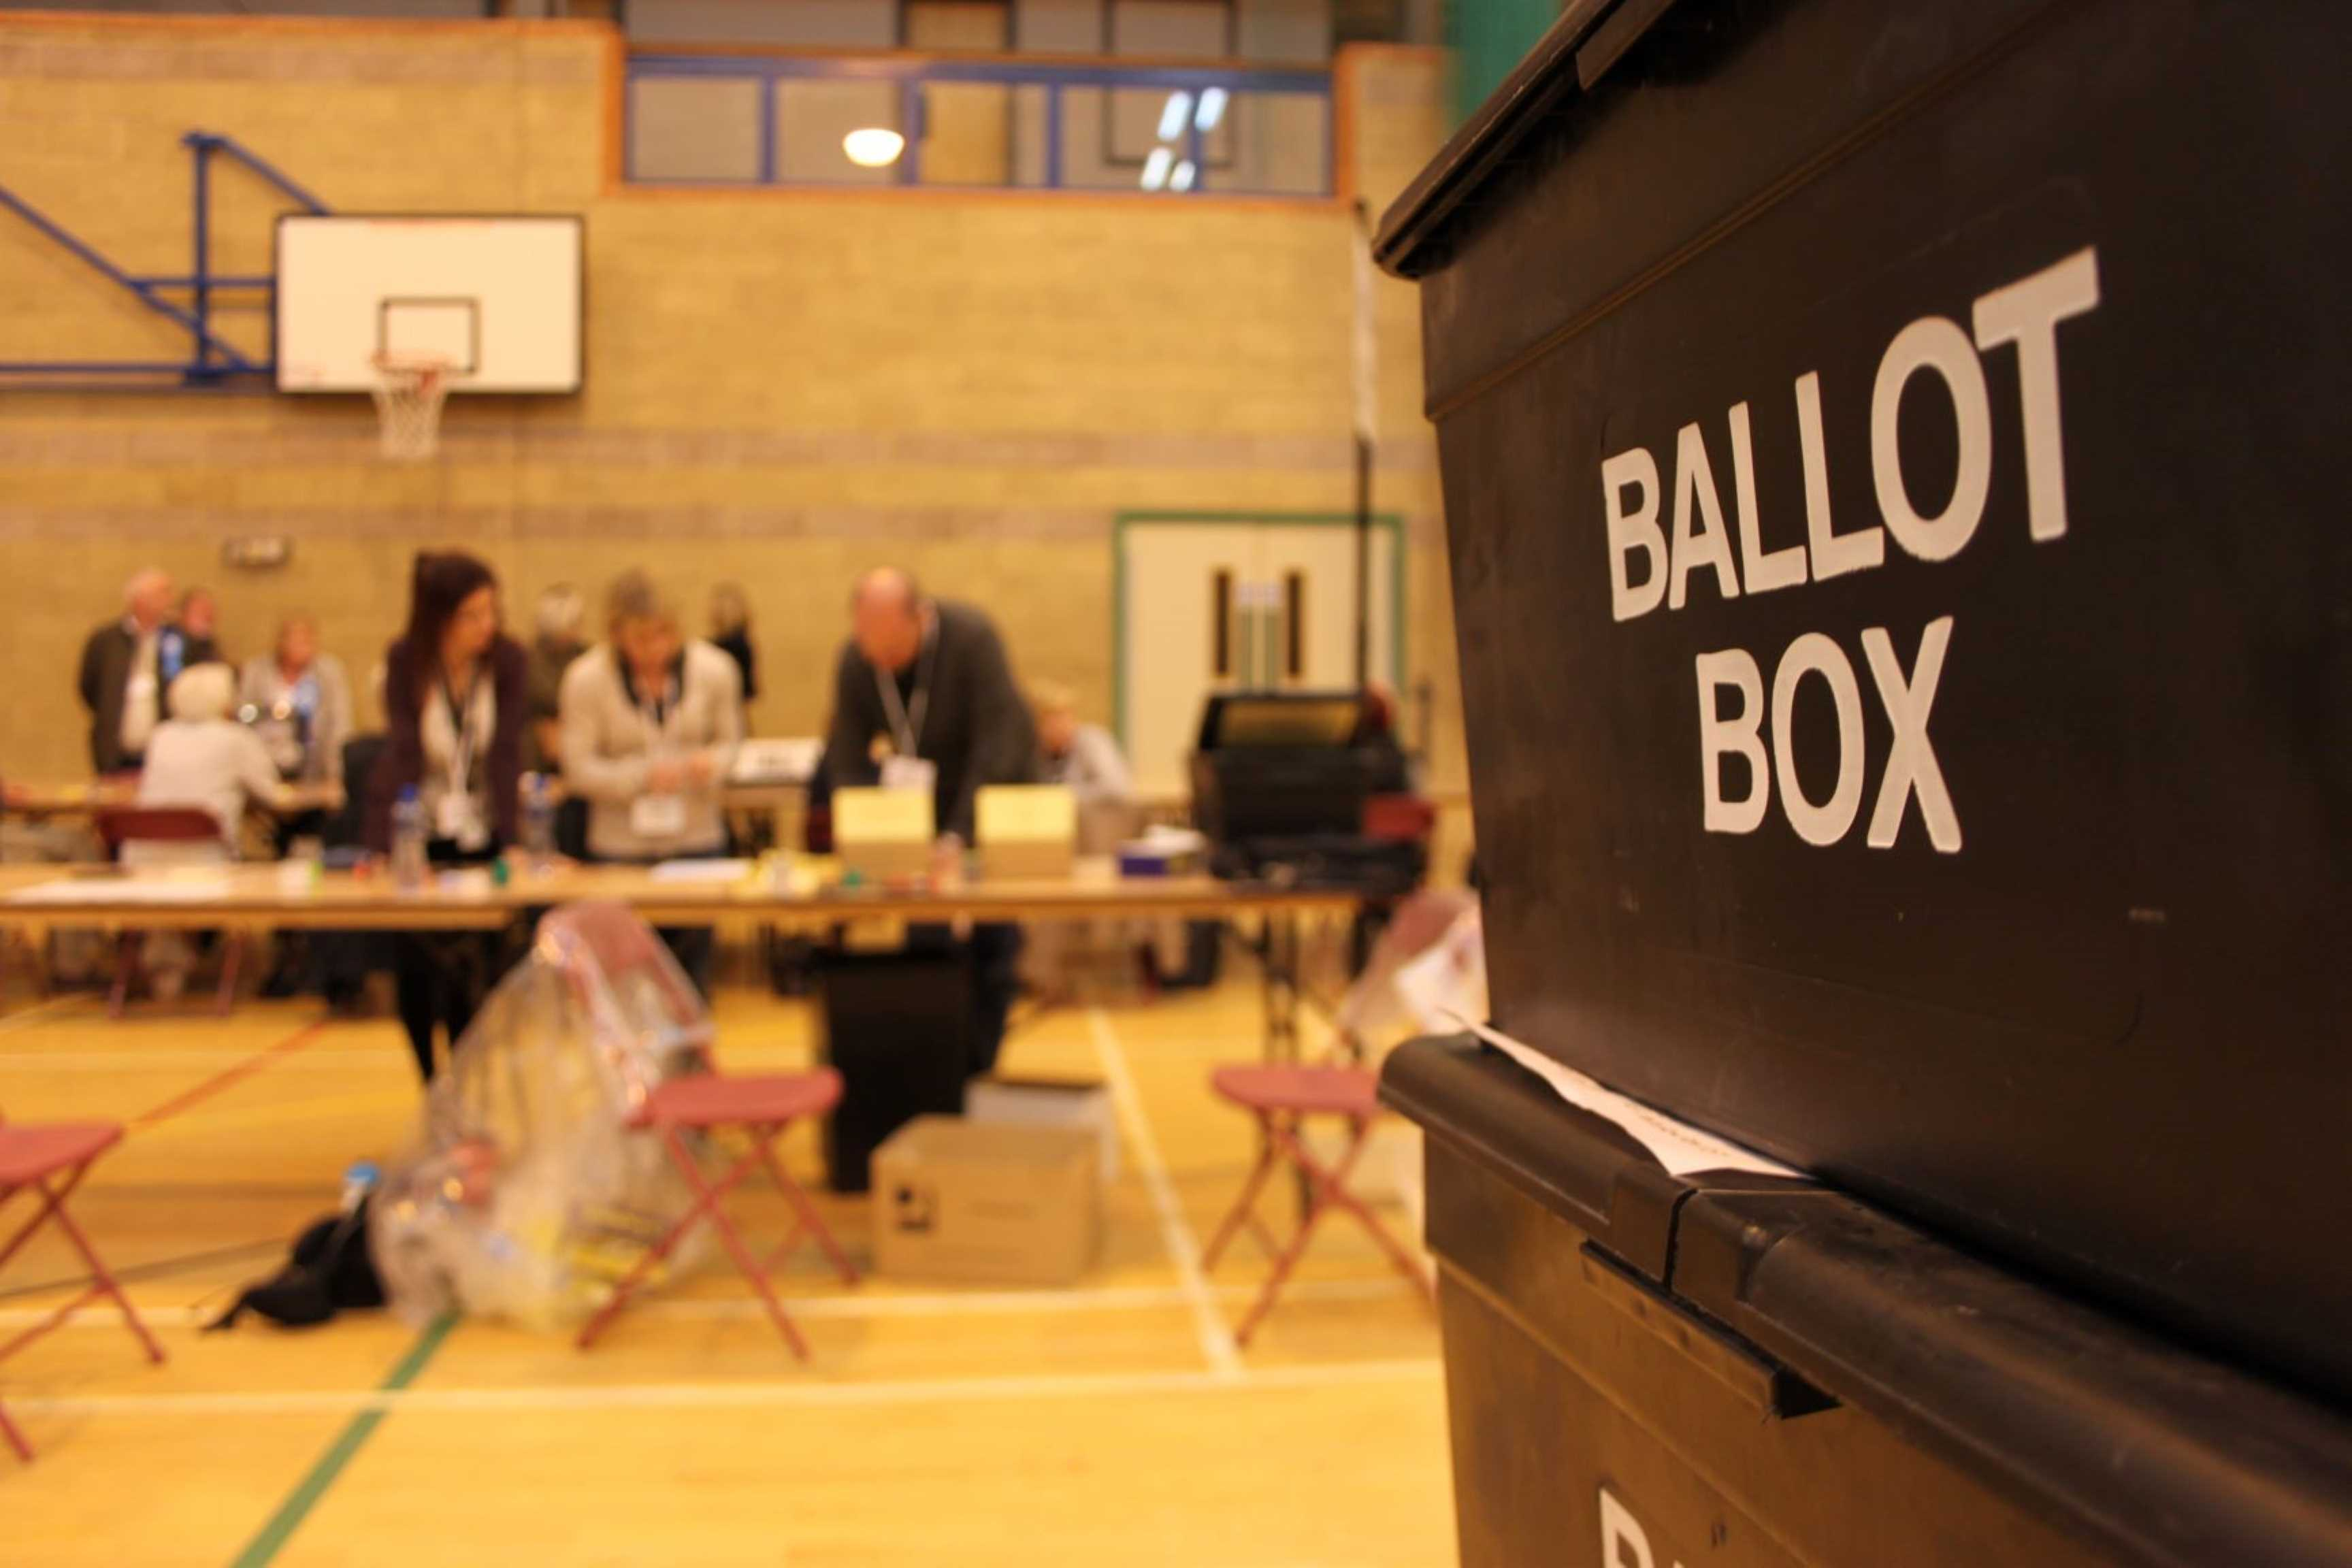 'Bring a pencil if you can!' – Public urged to take care and vote safely in today's local elections